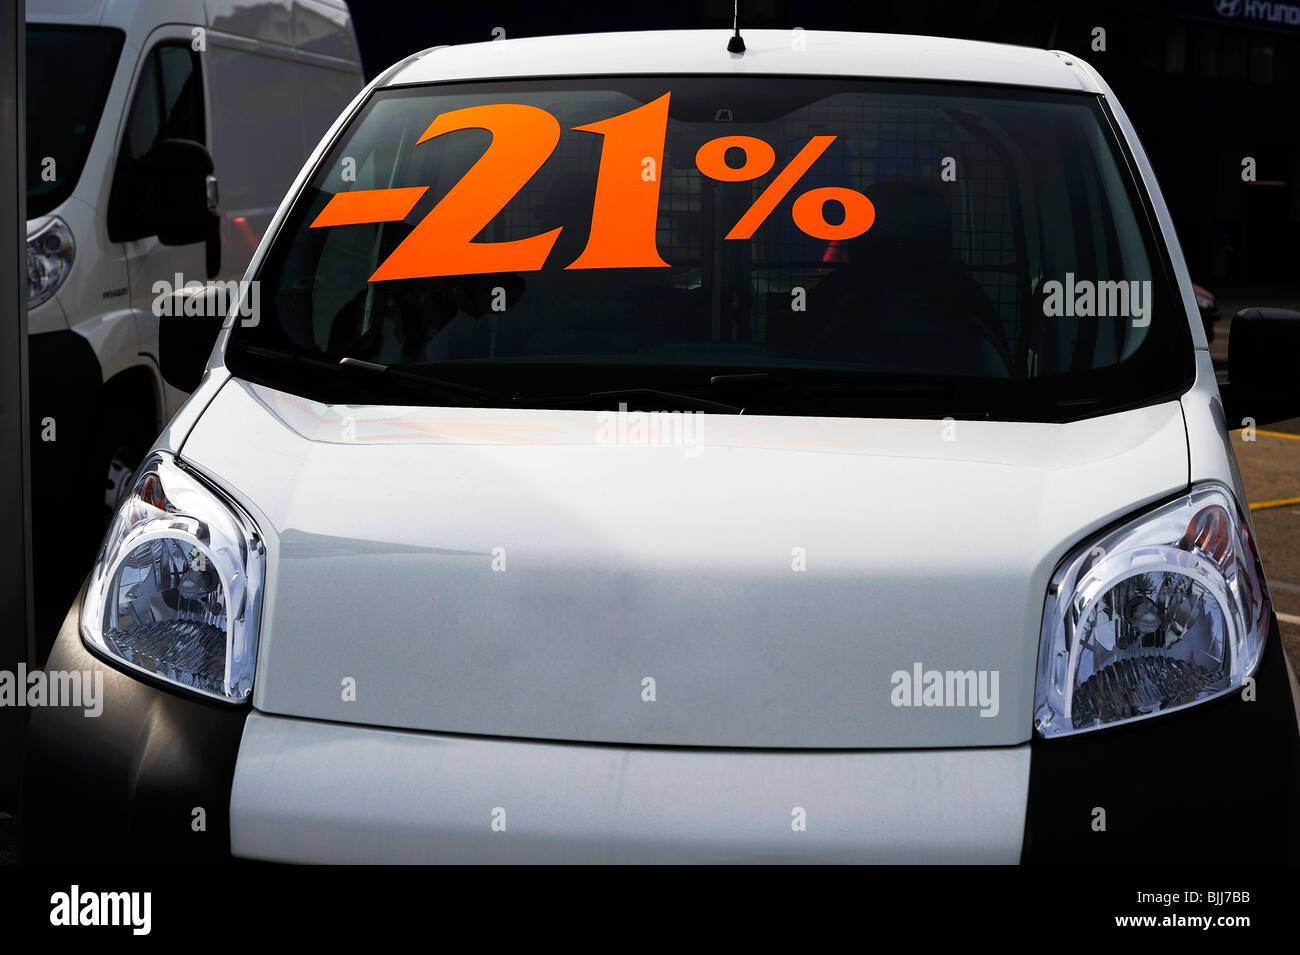 A new car displayed outside a showroom showing a 21% reduction on the price. - Stock Image